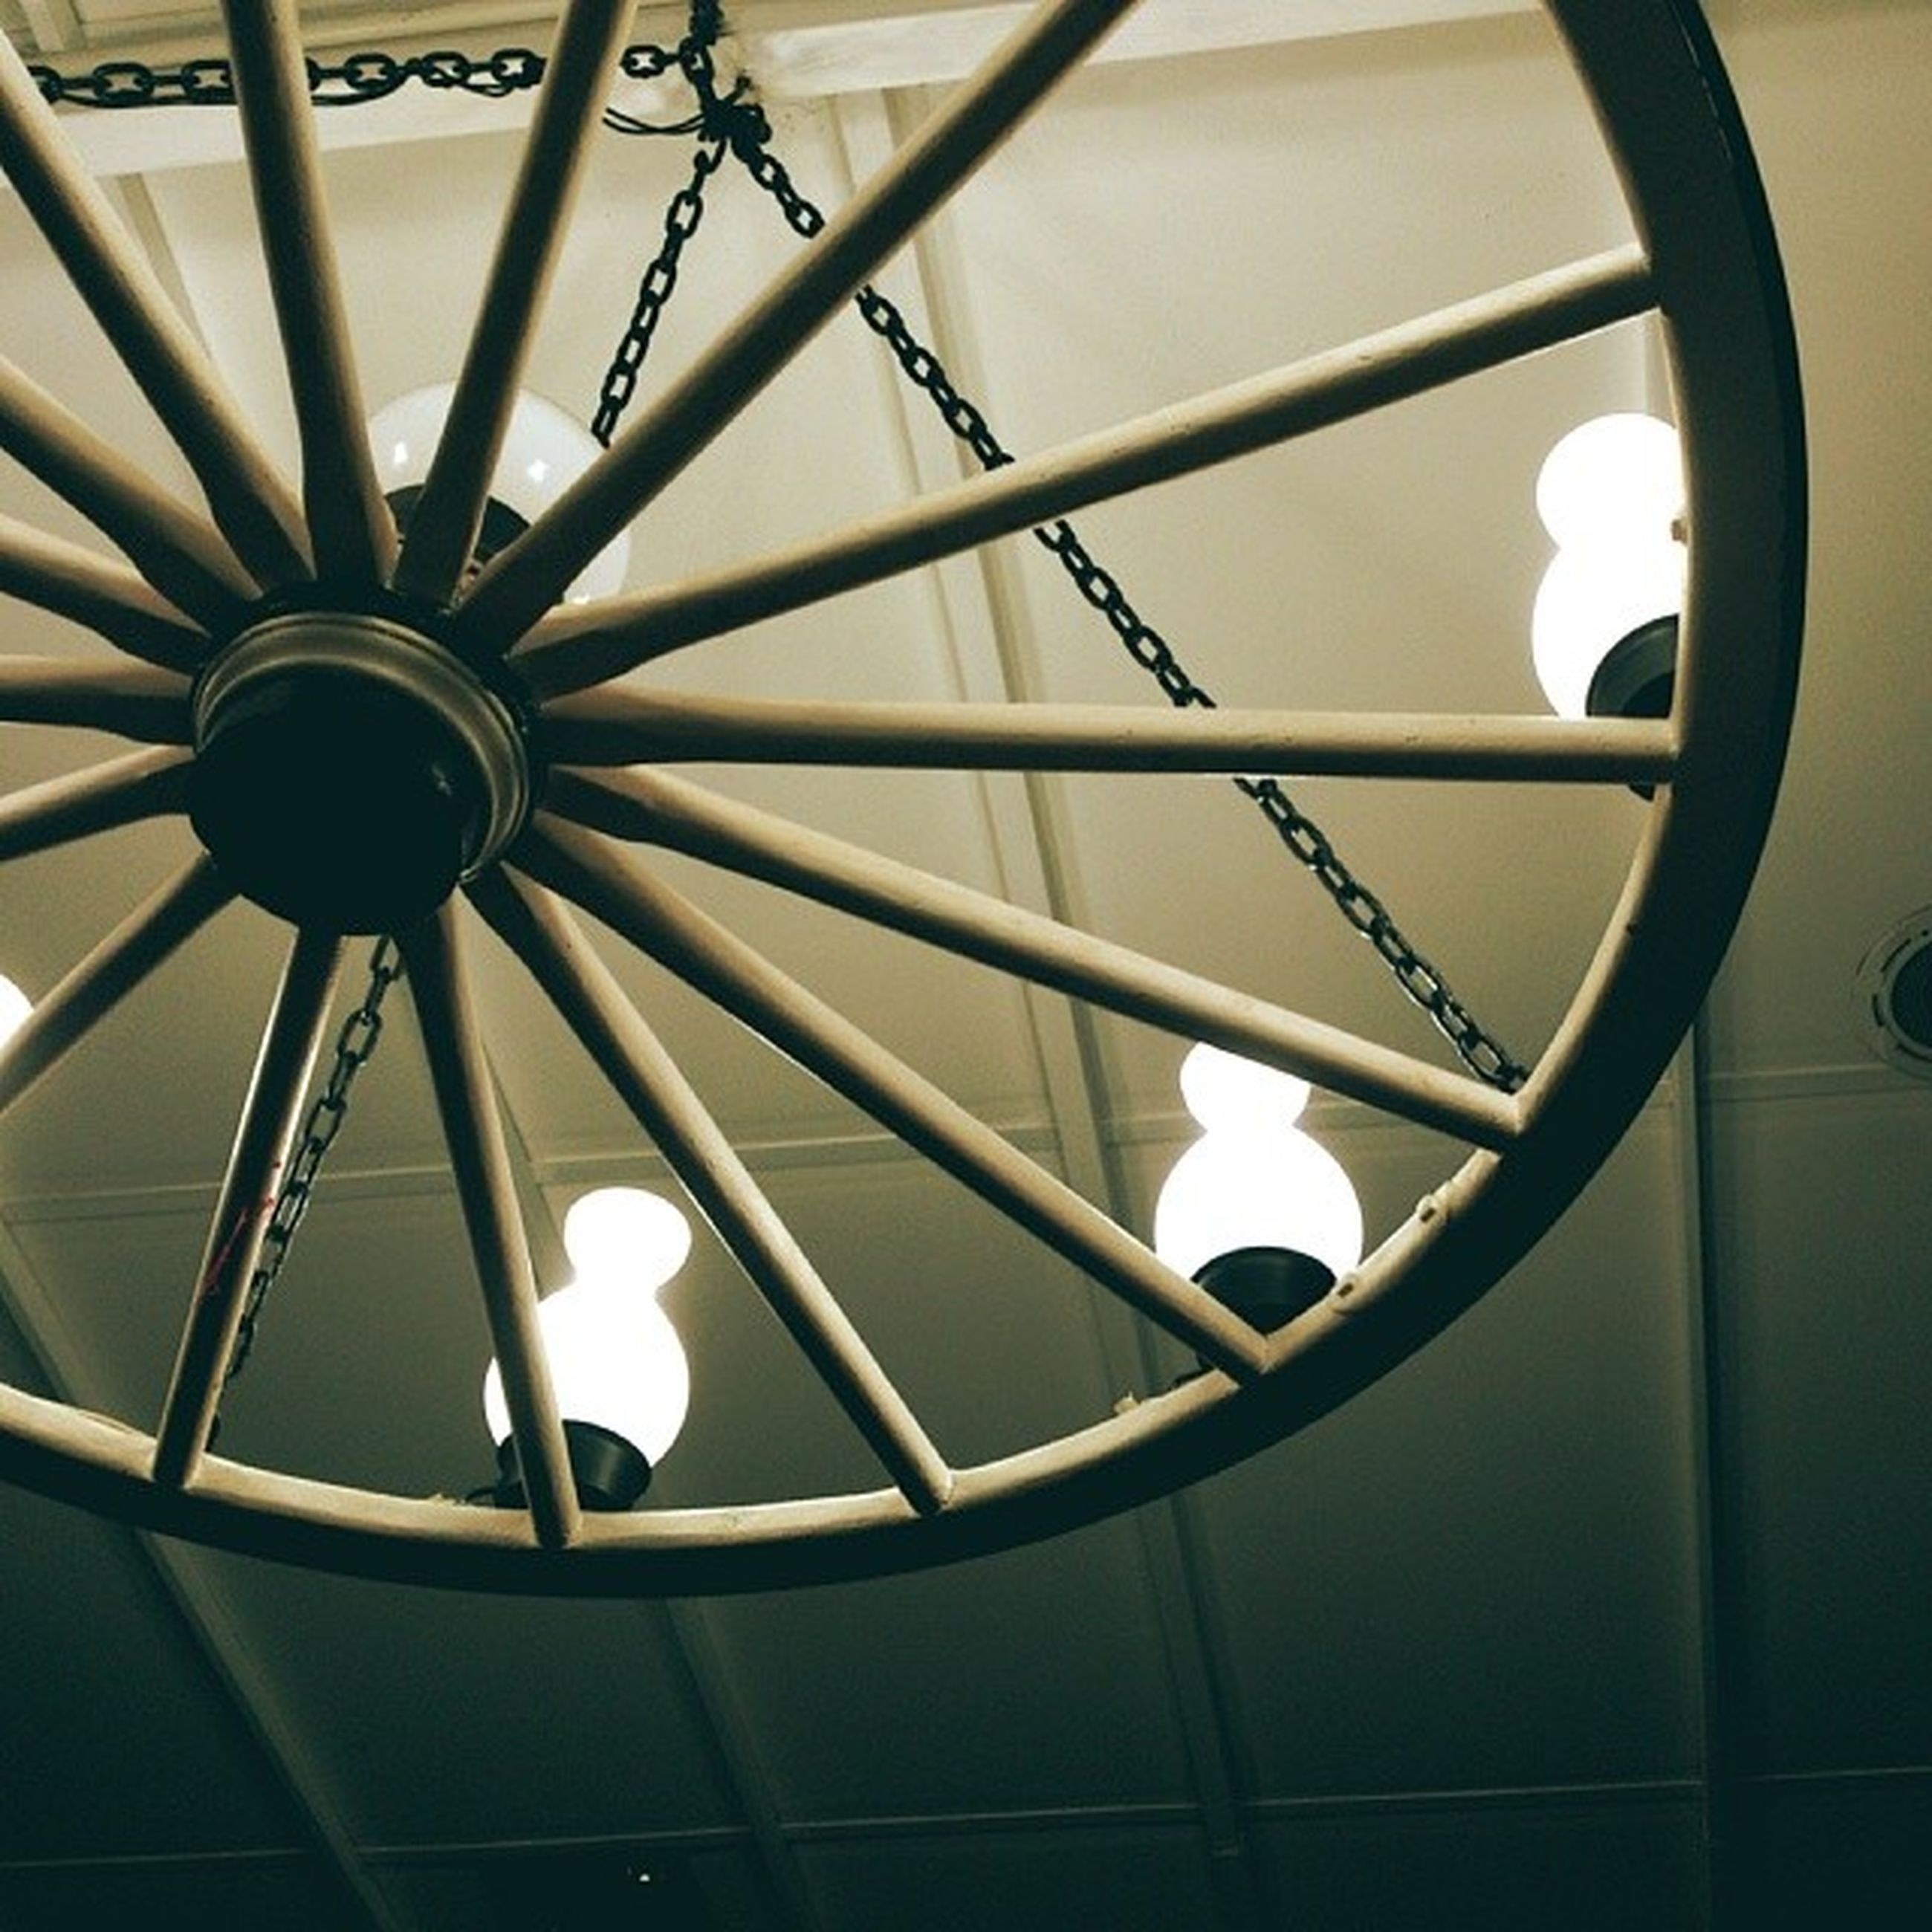 indoors, low angle view, ceiling, circle, directly below, geometric shape, built structure, pattern, lighting equipment, architecture, design, time, no people, illuminated, metal, hanging, clock, architectural feature, shape, skylight